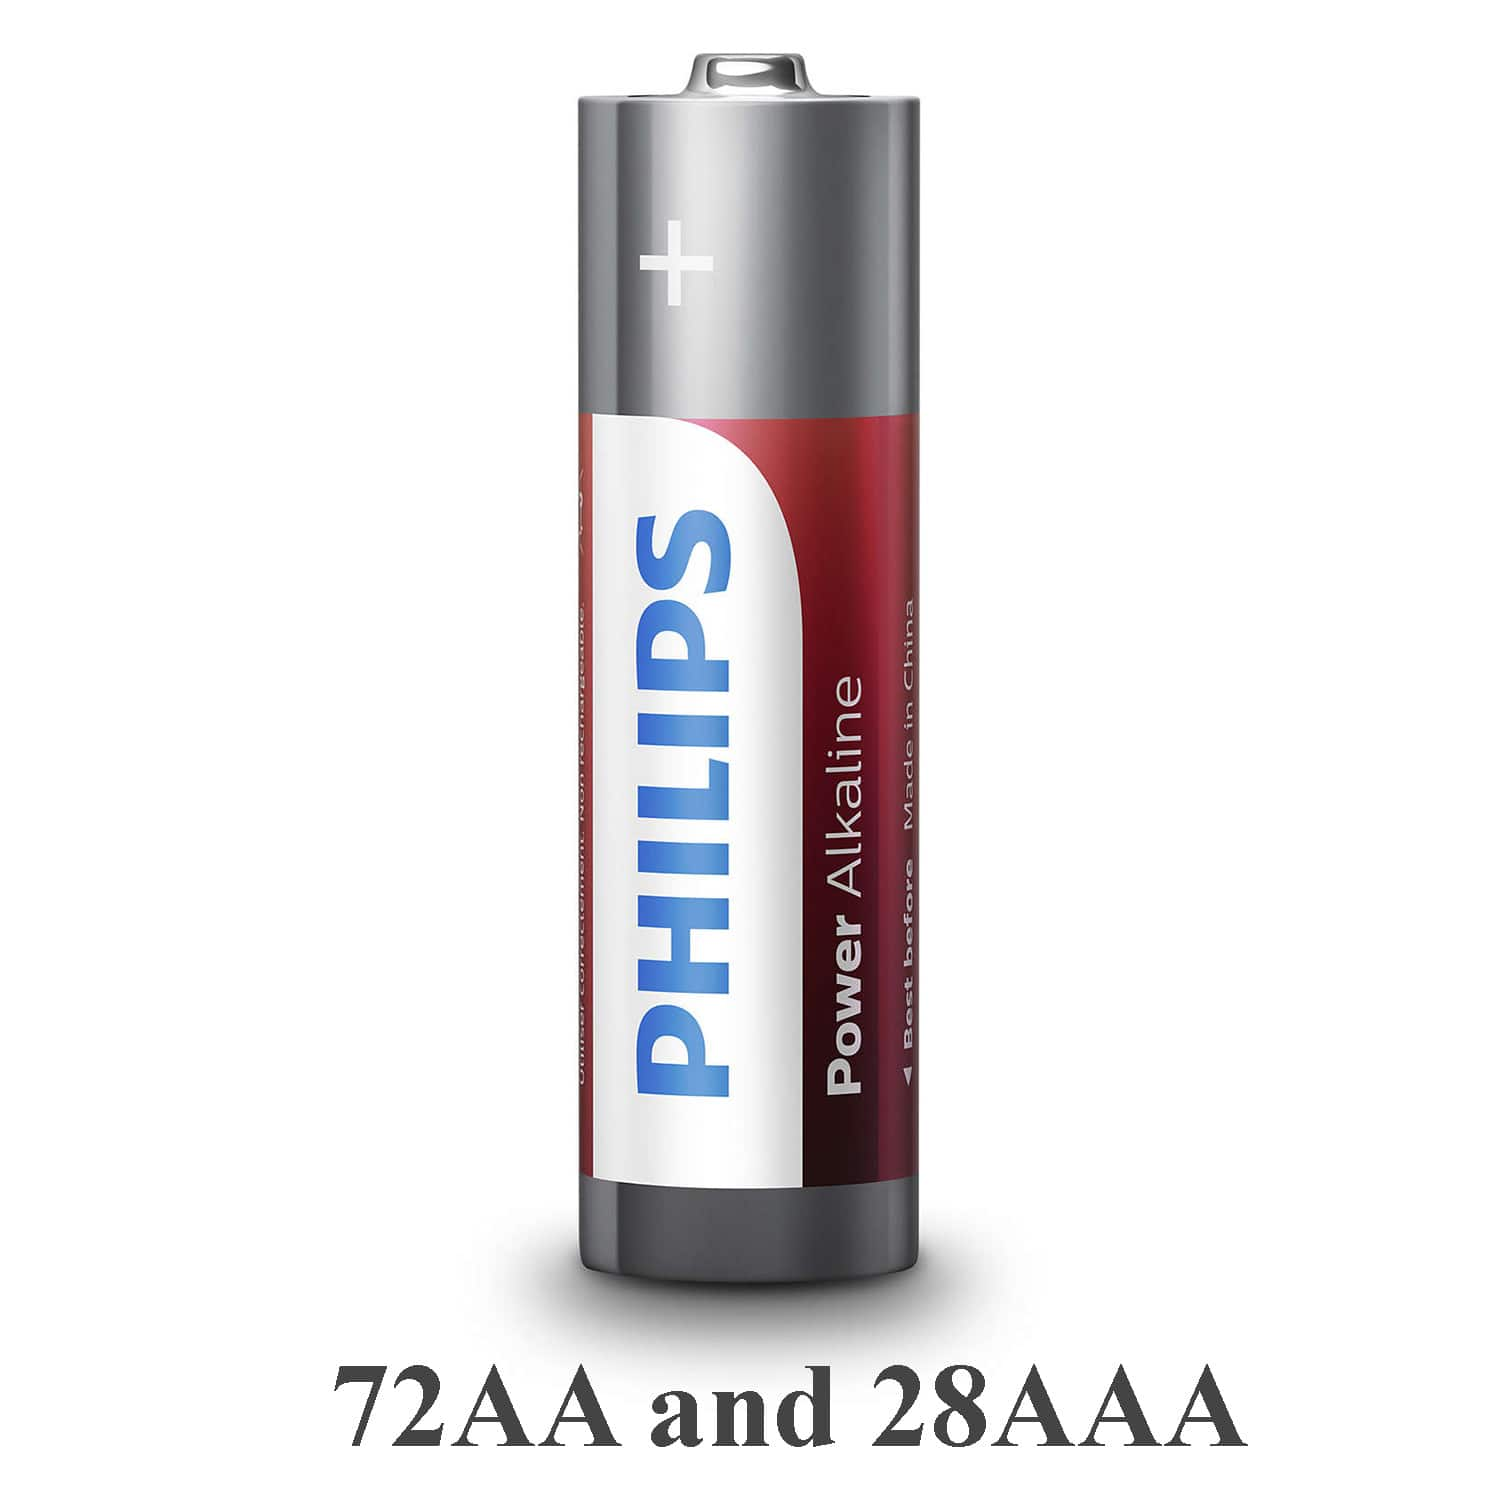 100 Pack Philips Power Alkaline Long Lasting Batteries - 72AA and 28AAA $20.79 + free s/h